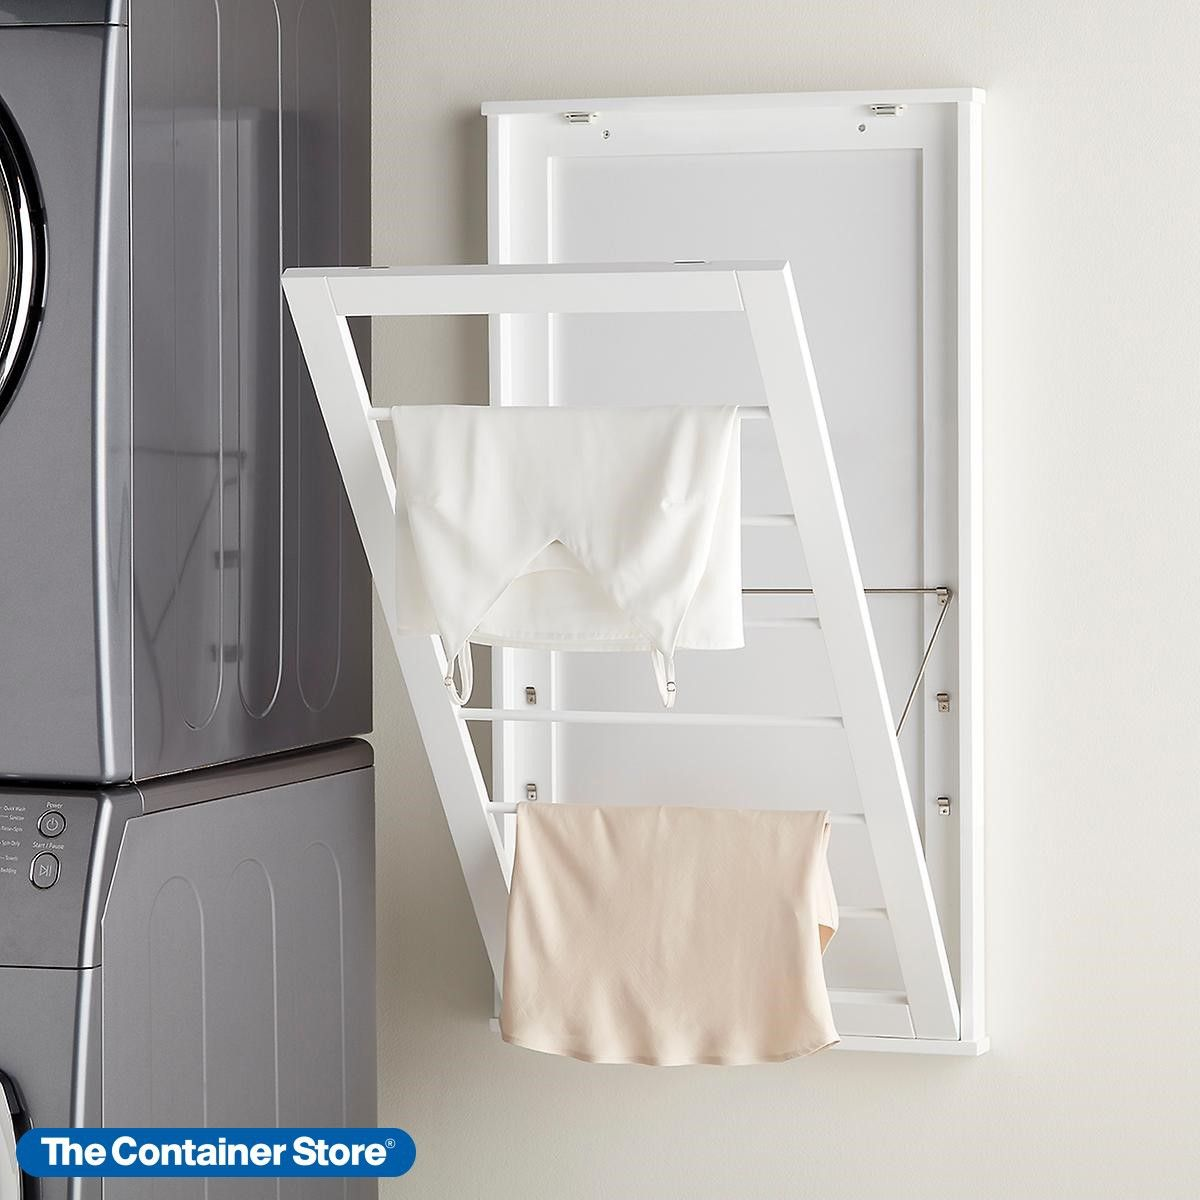 6 Tier Adjustable Wall Mounted Drying Rack Wall Mounted Drying Rack Drying Rack Laundry Rack